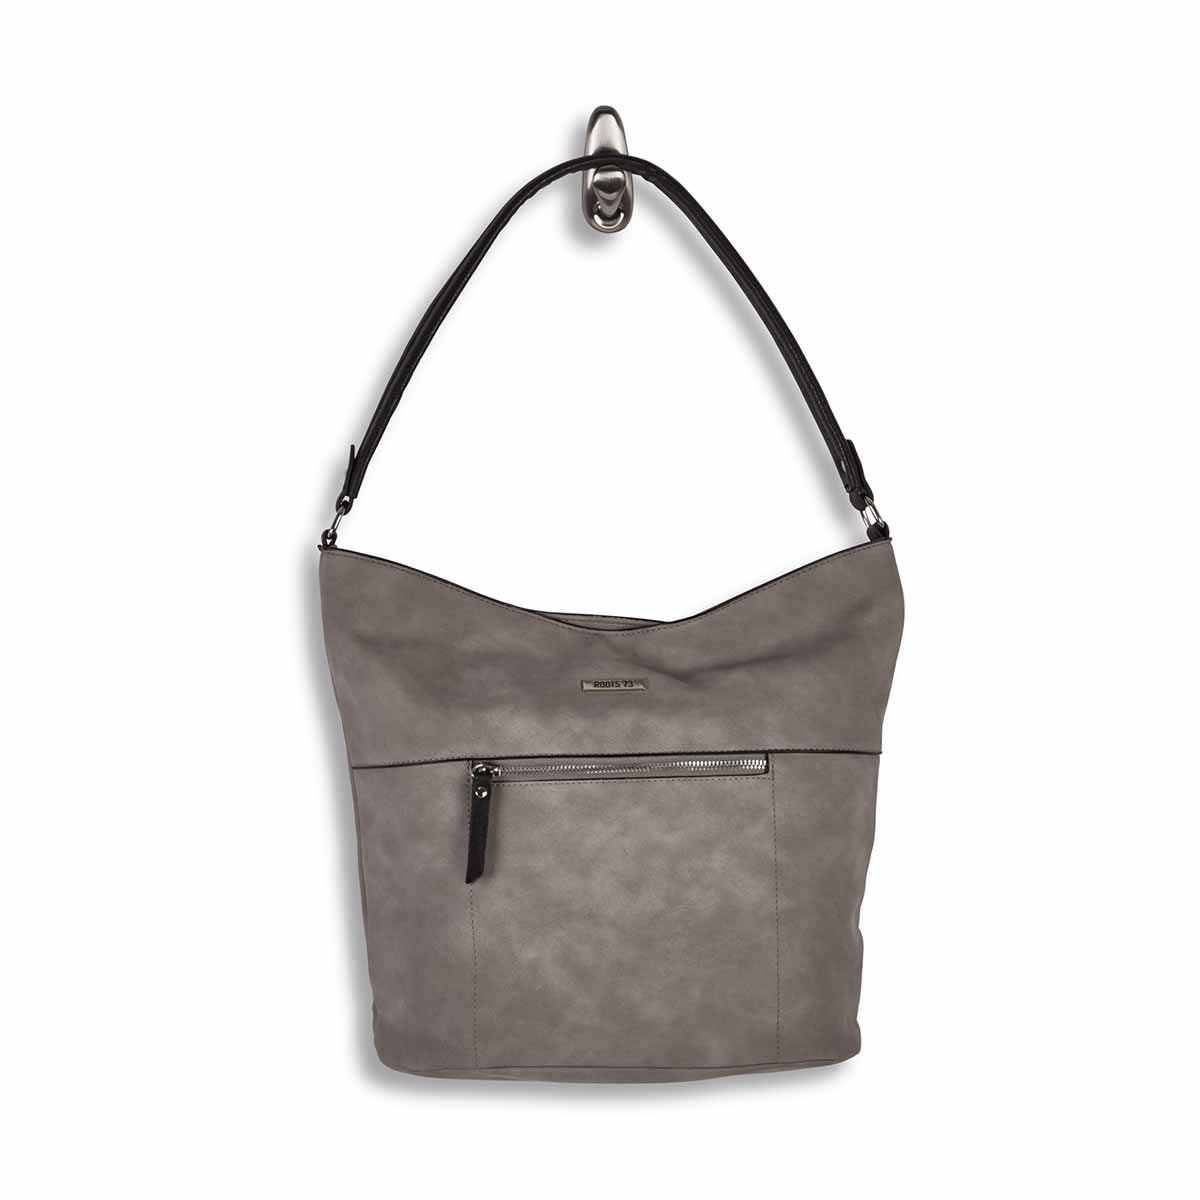 Lds grey top zip closure hobo bag